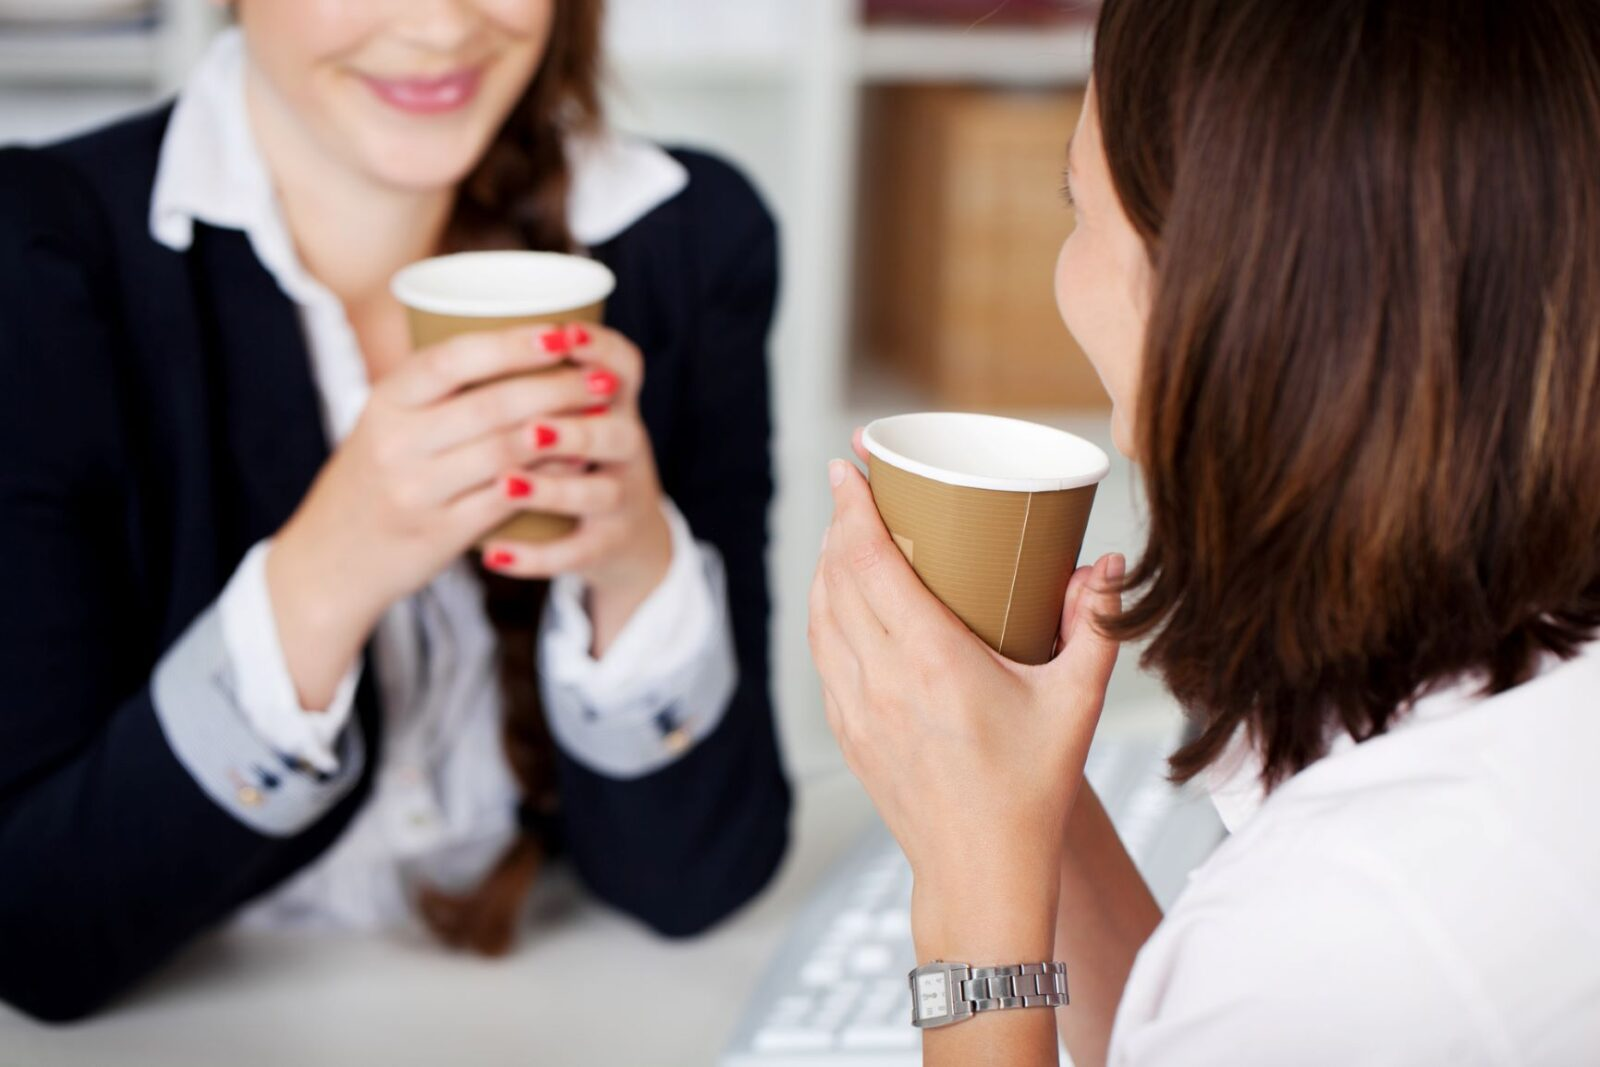 Over-the-shoulder shot of a client drinking coffee from a paper cup while having a friendly conversation with an attorney, seated opposite.